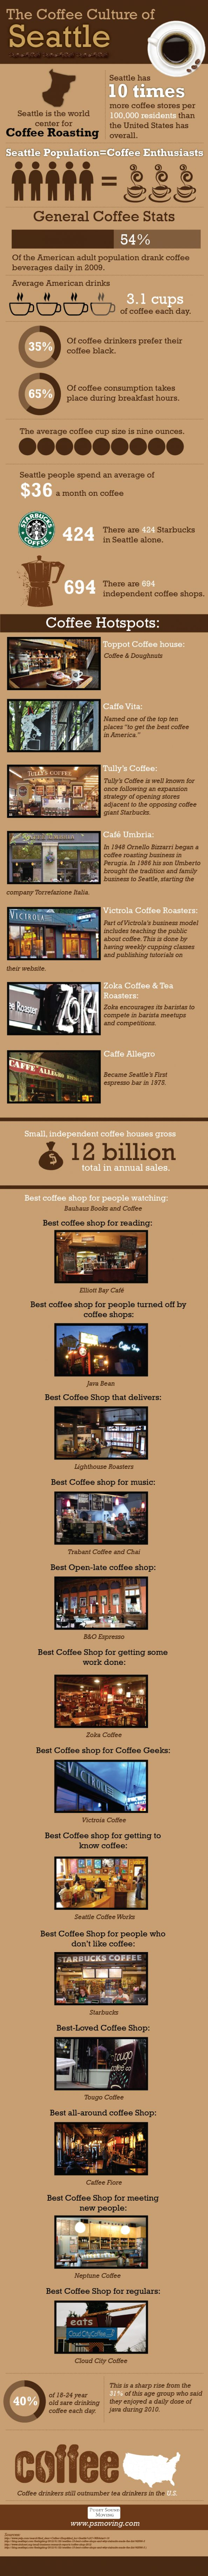 Wow! So Interesting, an great recommendations: The Coffee Culture of Seattle